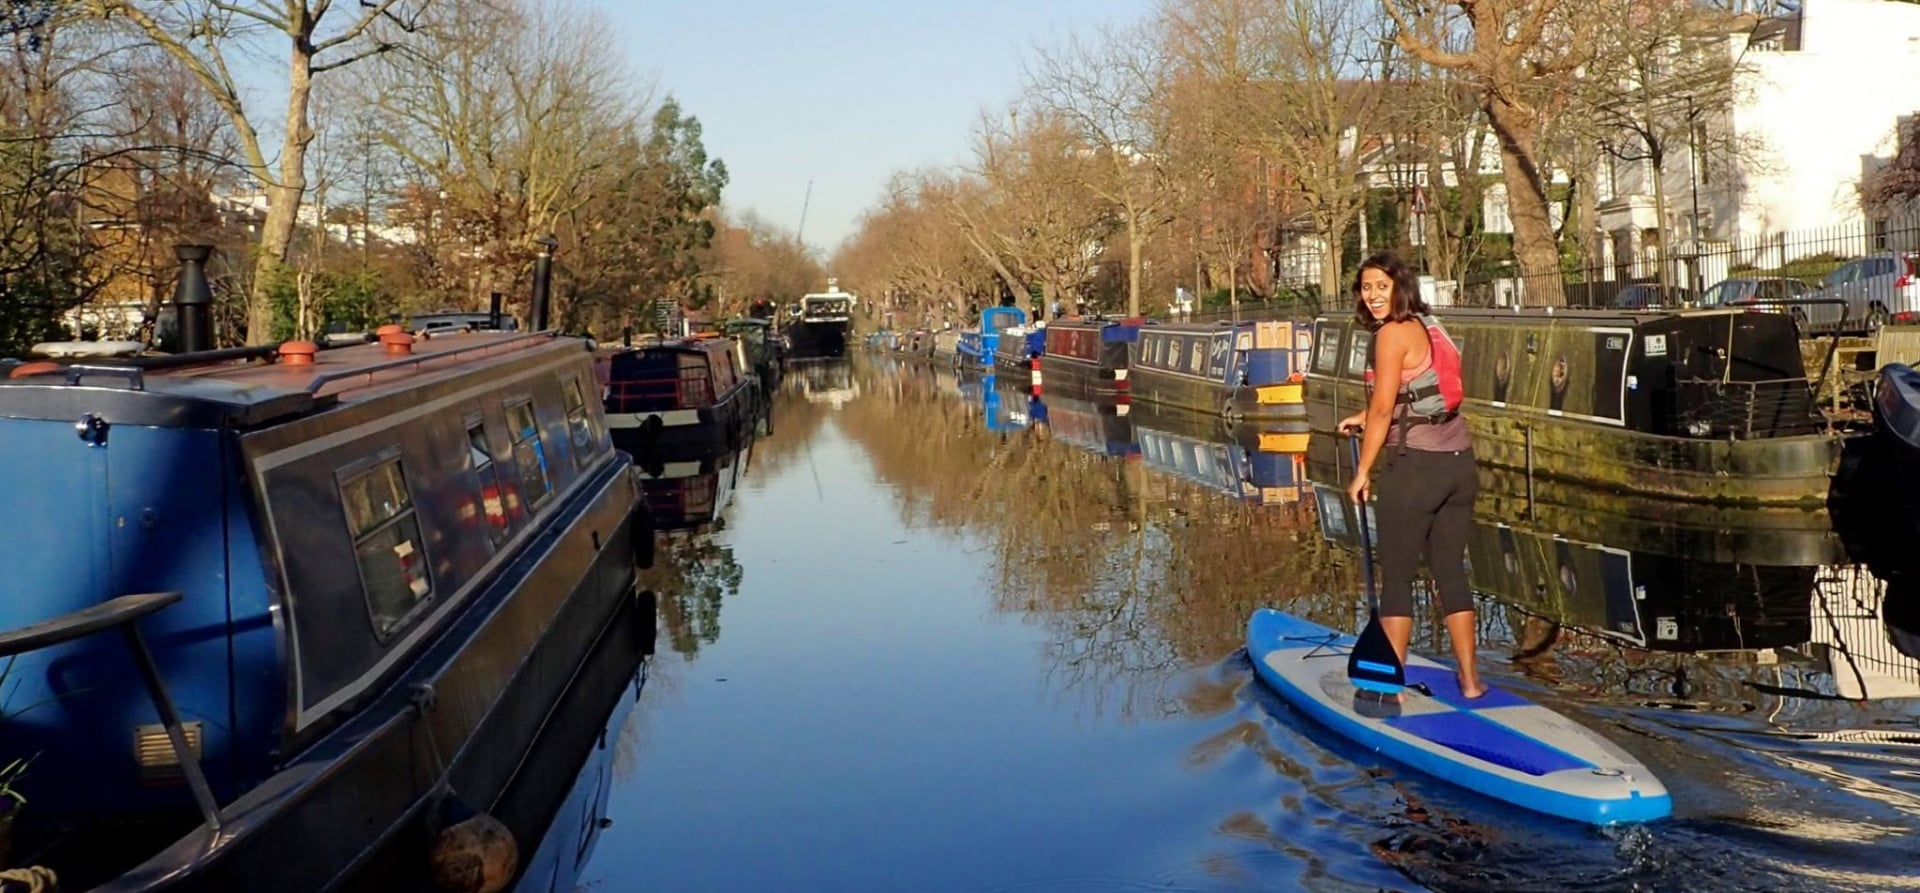 Beginners Private SUP Lesson - London-5